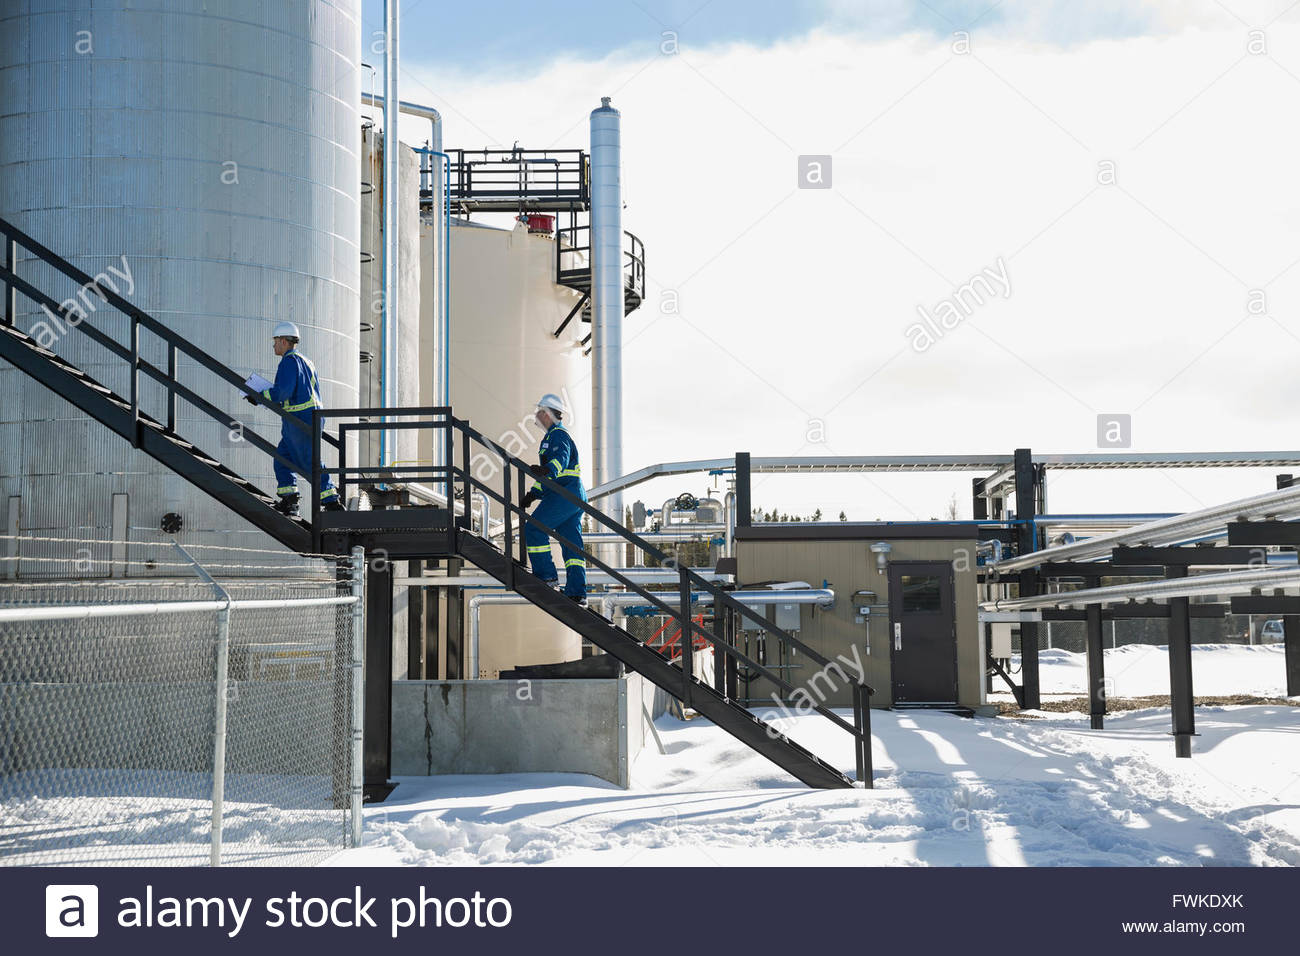 Workers ascending stairs at gas plant - Stock Image